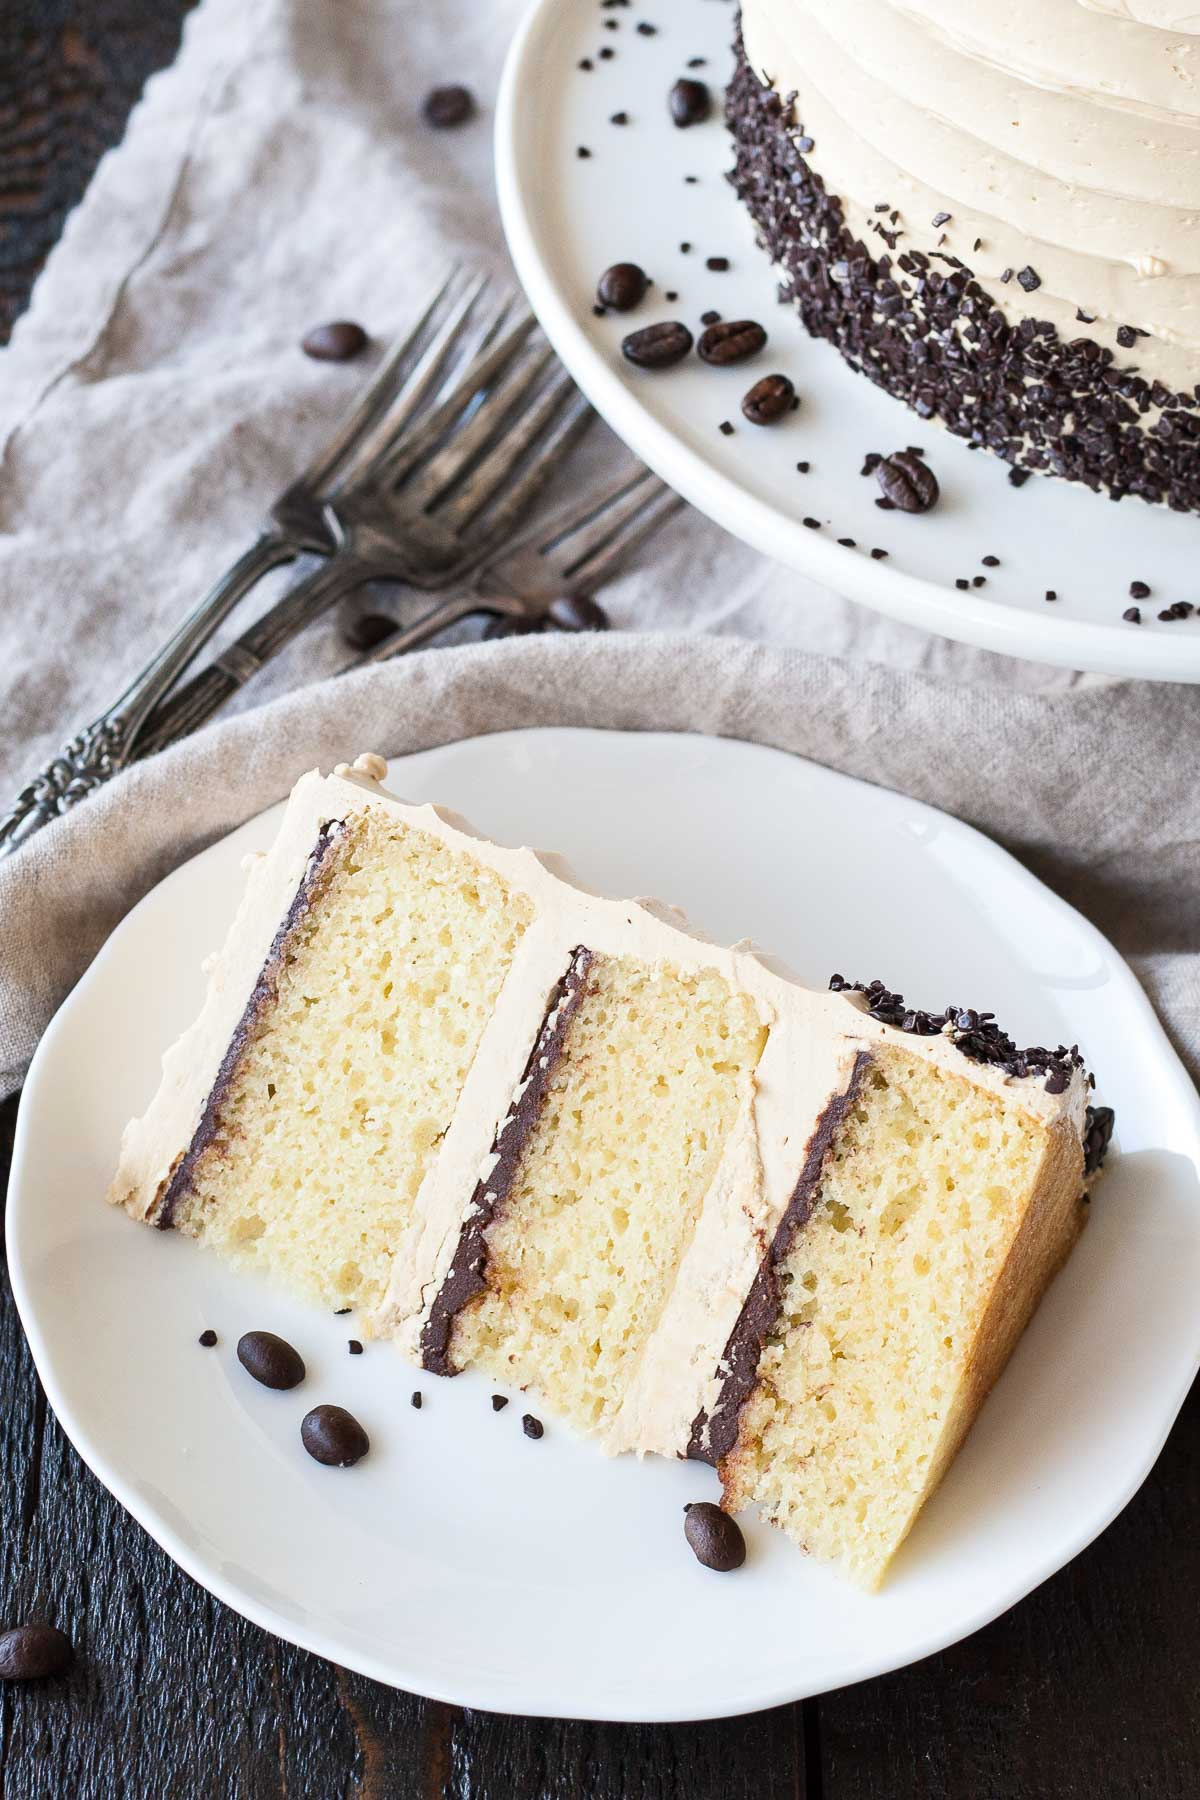 Marshmallow coffee cake recipe